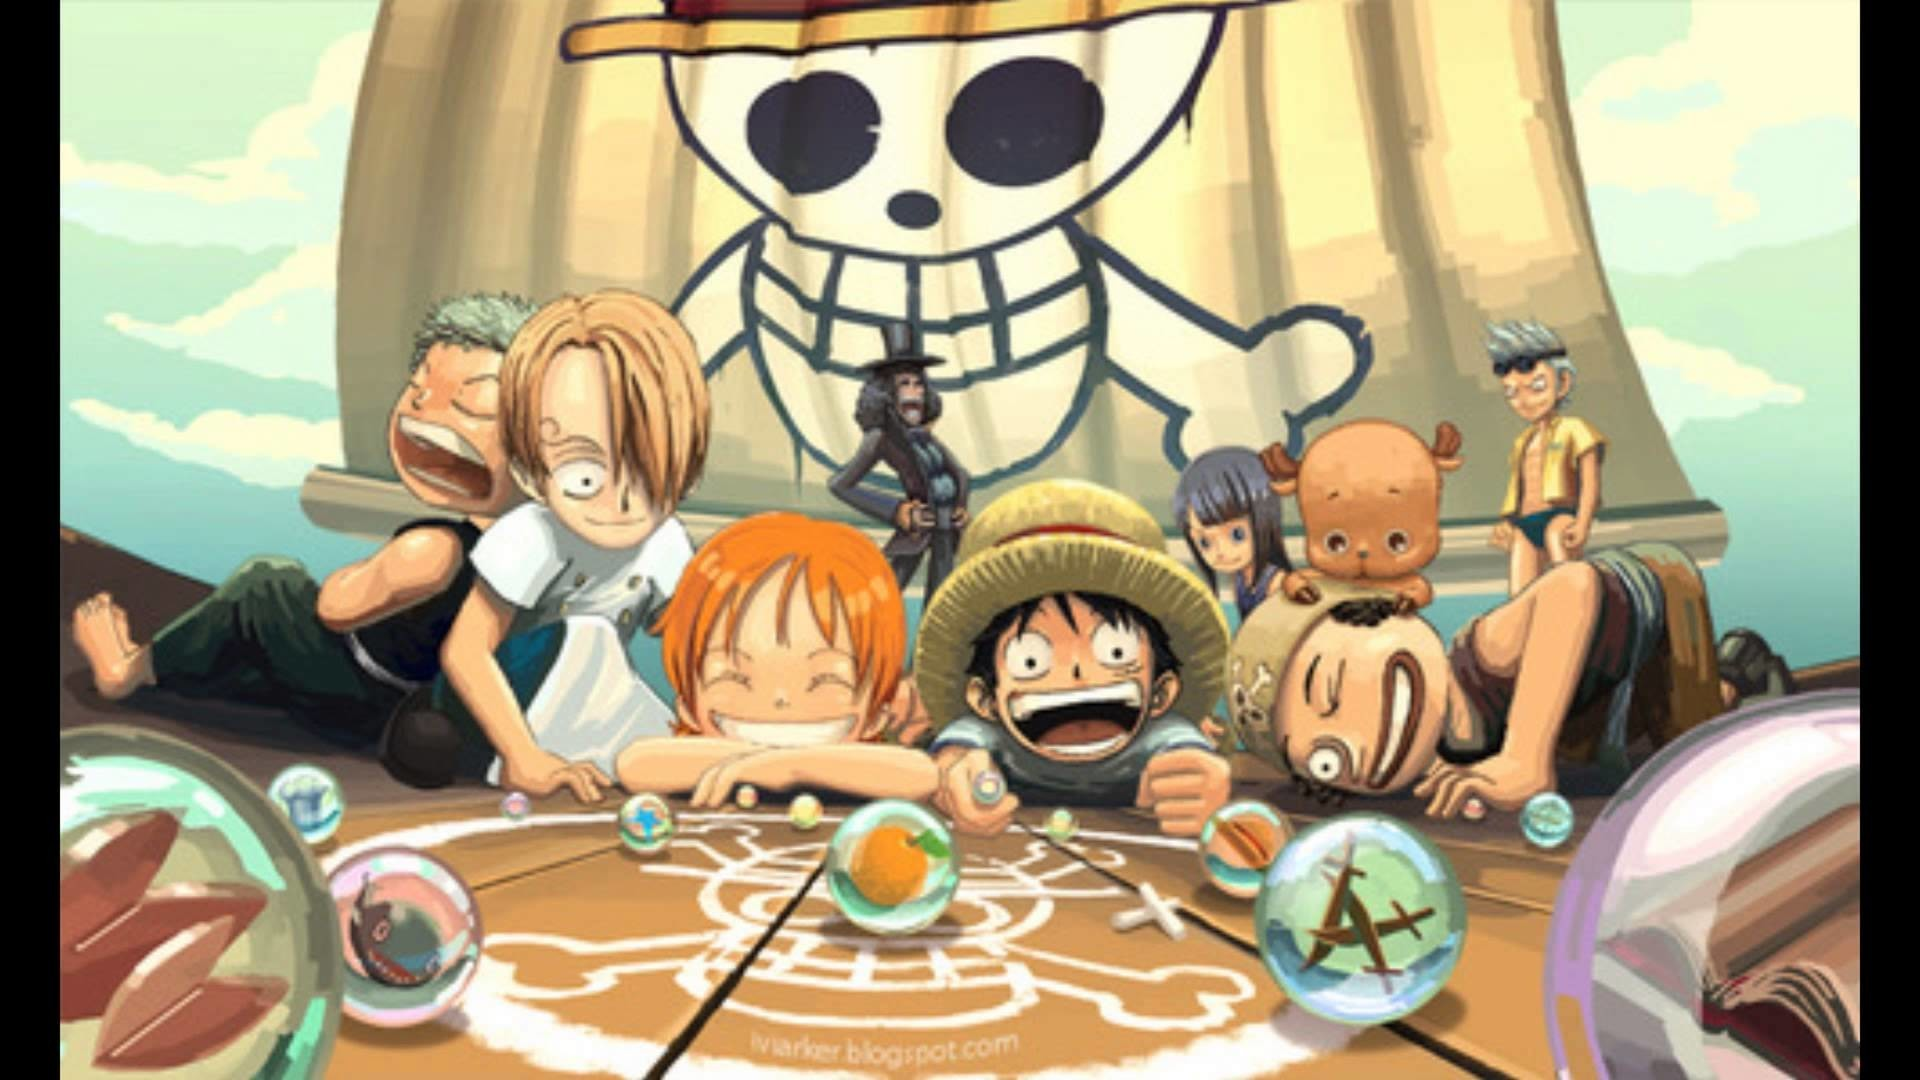 1920x1080 2736x1400 One Piece, Roronoa Zoro, Monkey D. Luffy, Nami, Sanji, Usopp  Wallpaper HD